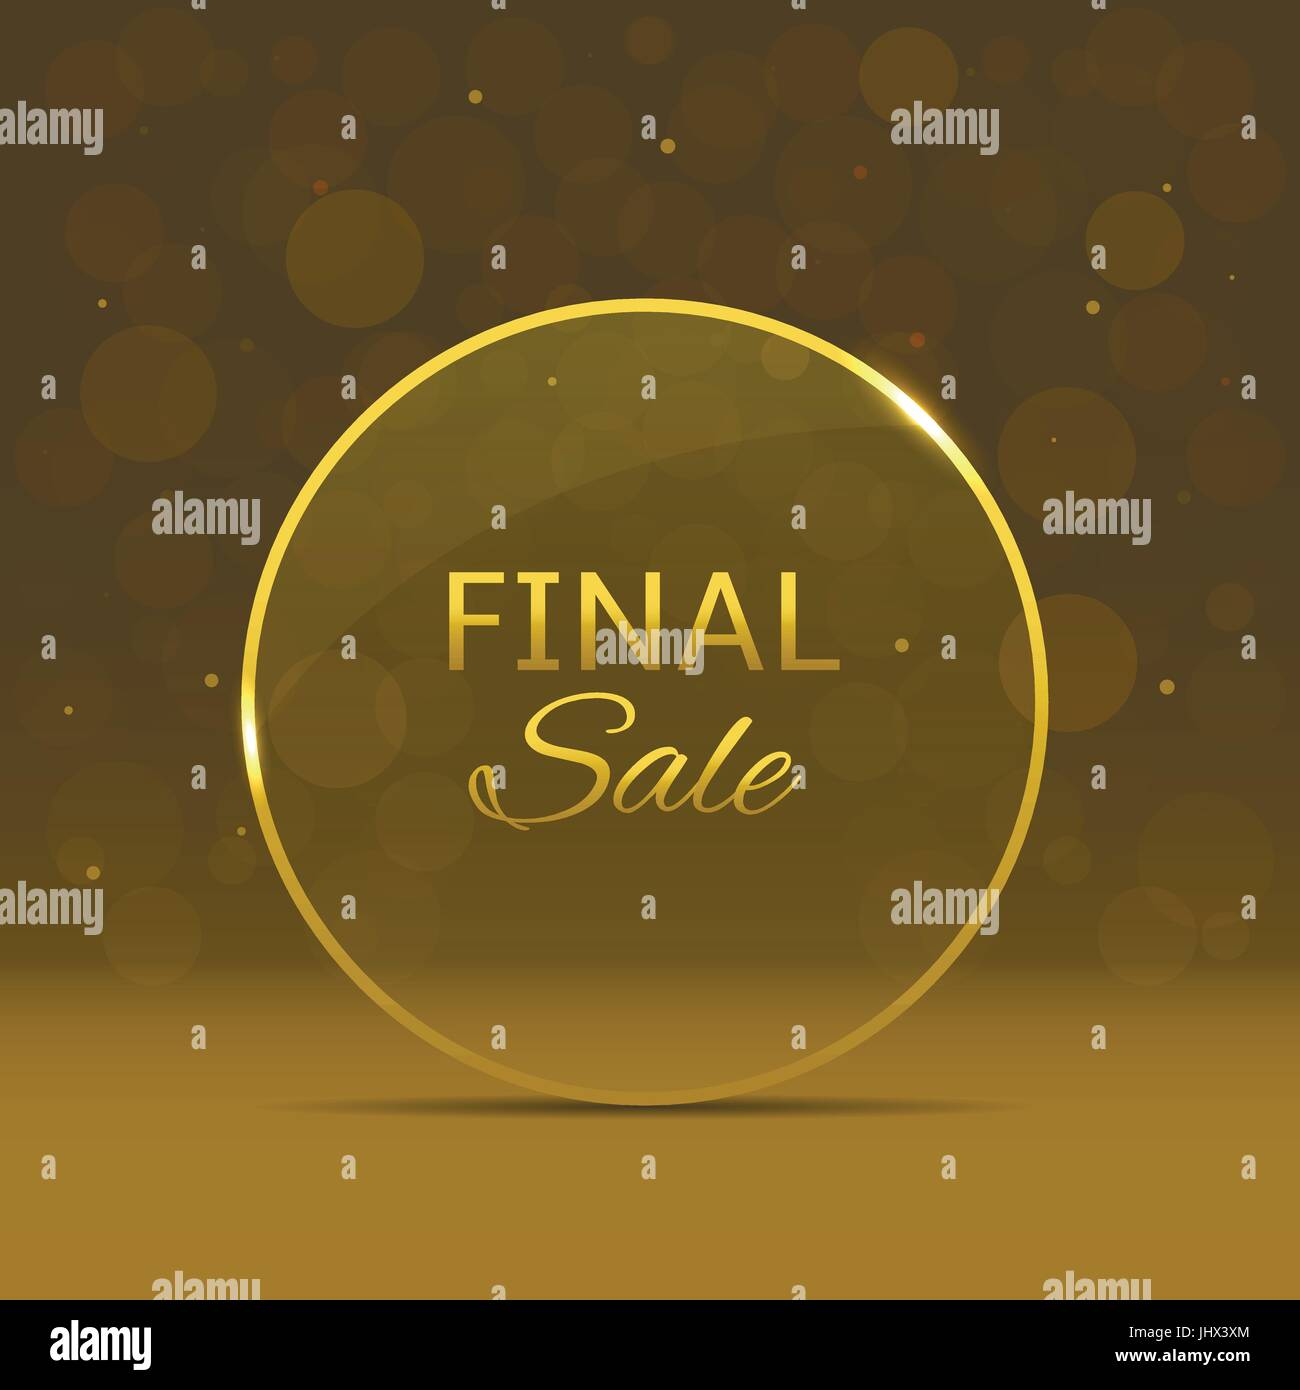 Final sale label - Stock Vector